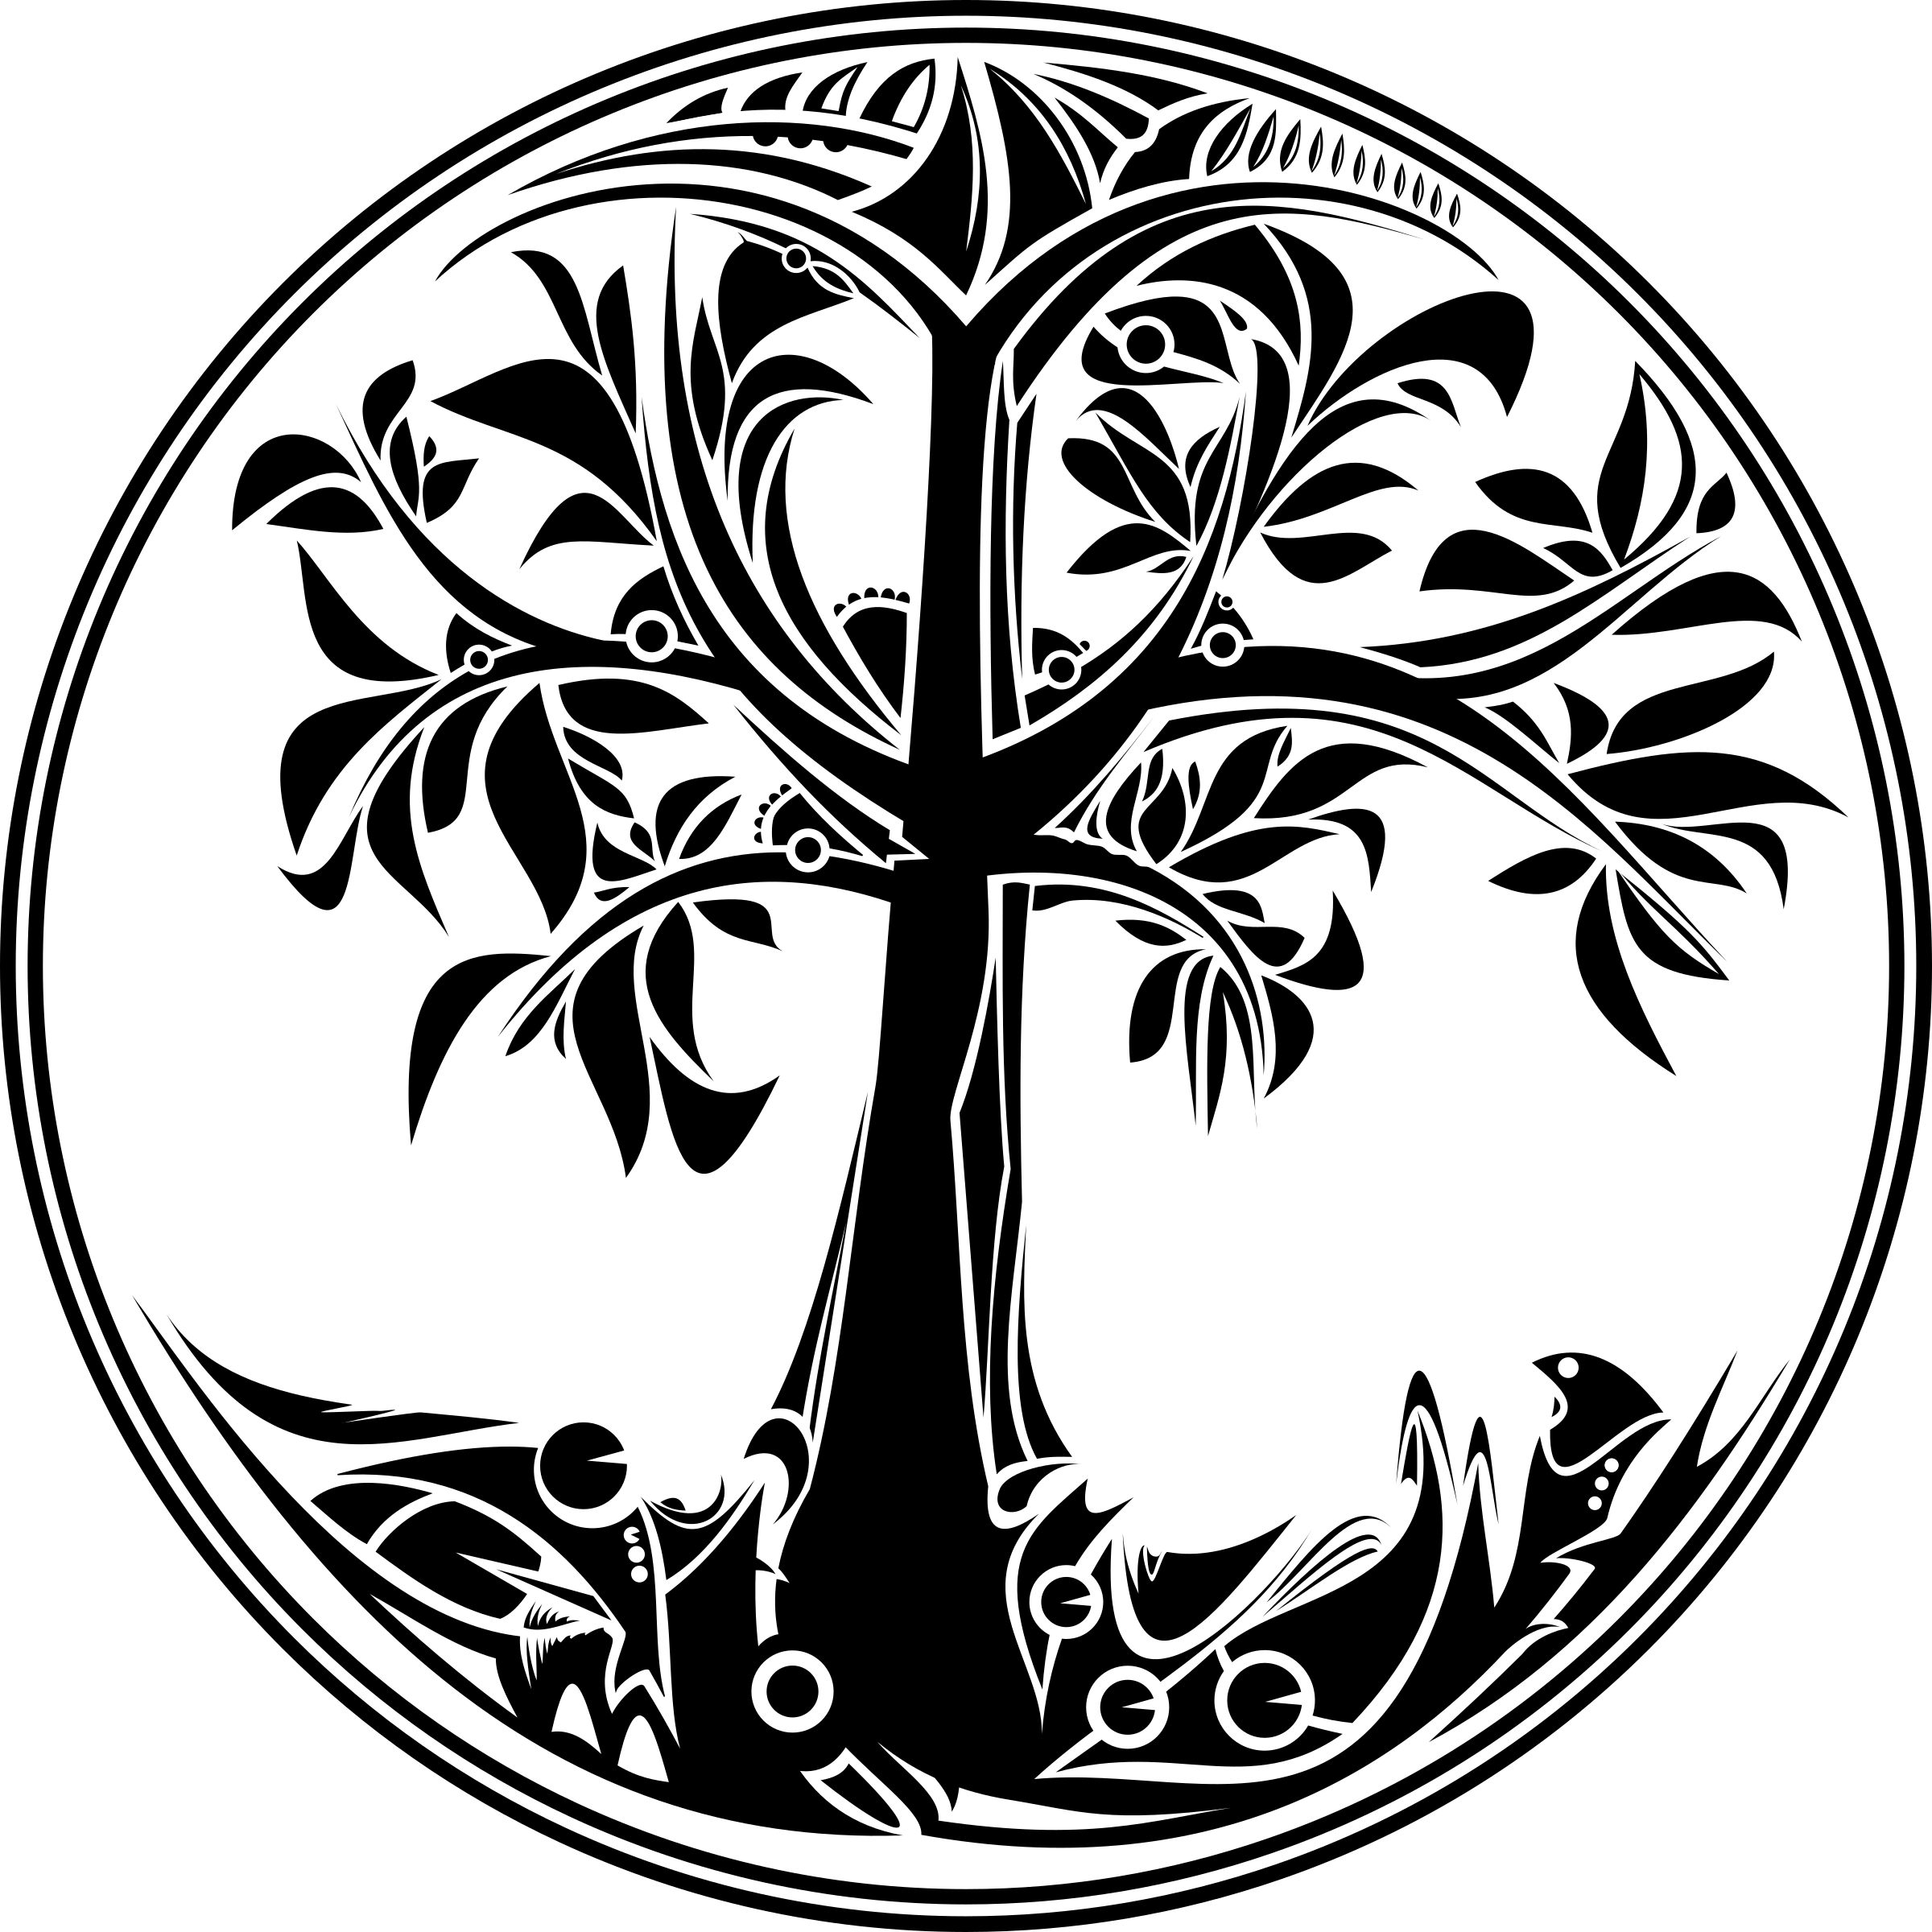 Black And White Tree Of Life PNG - 170284